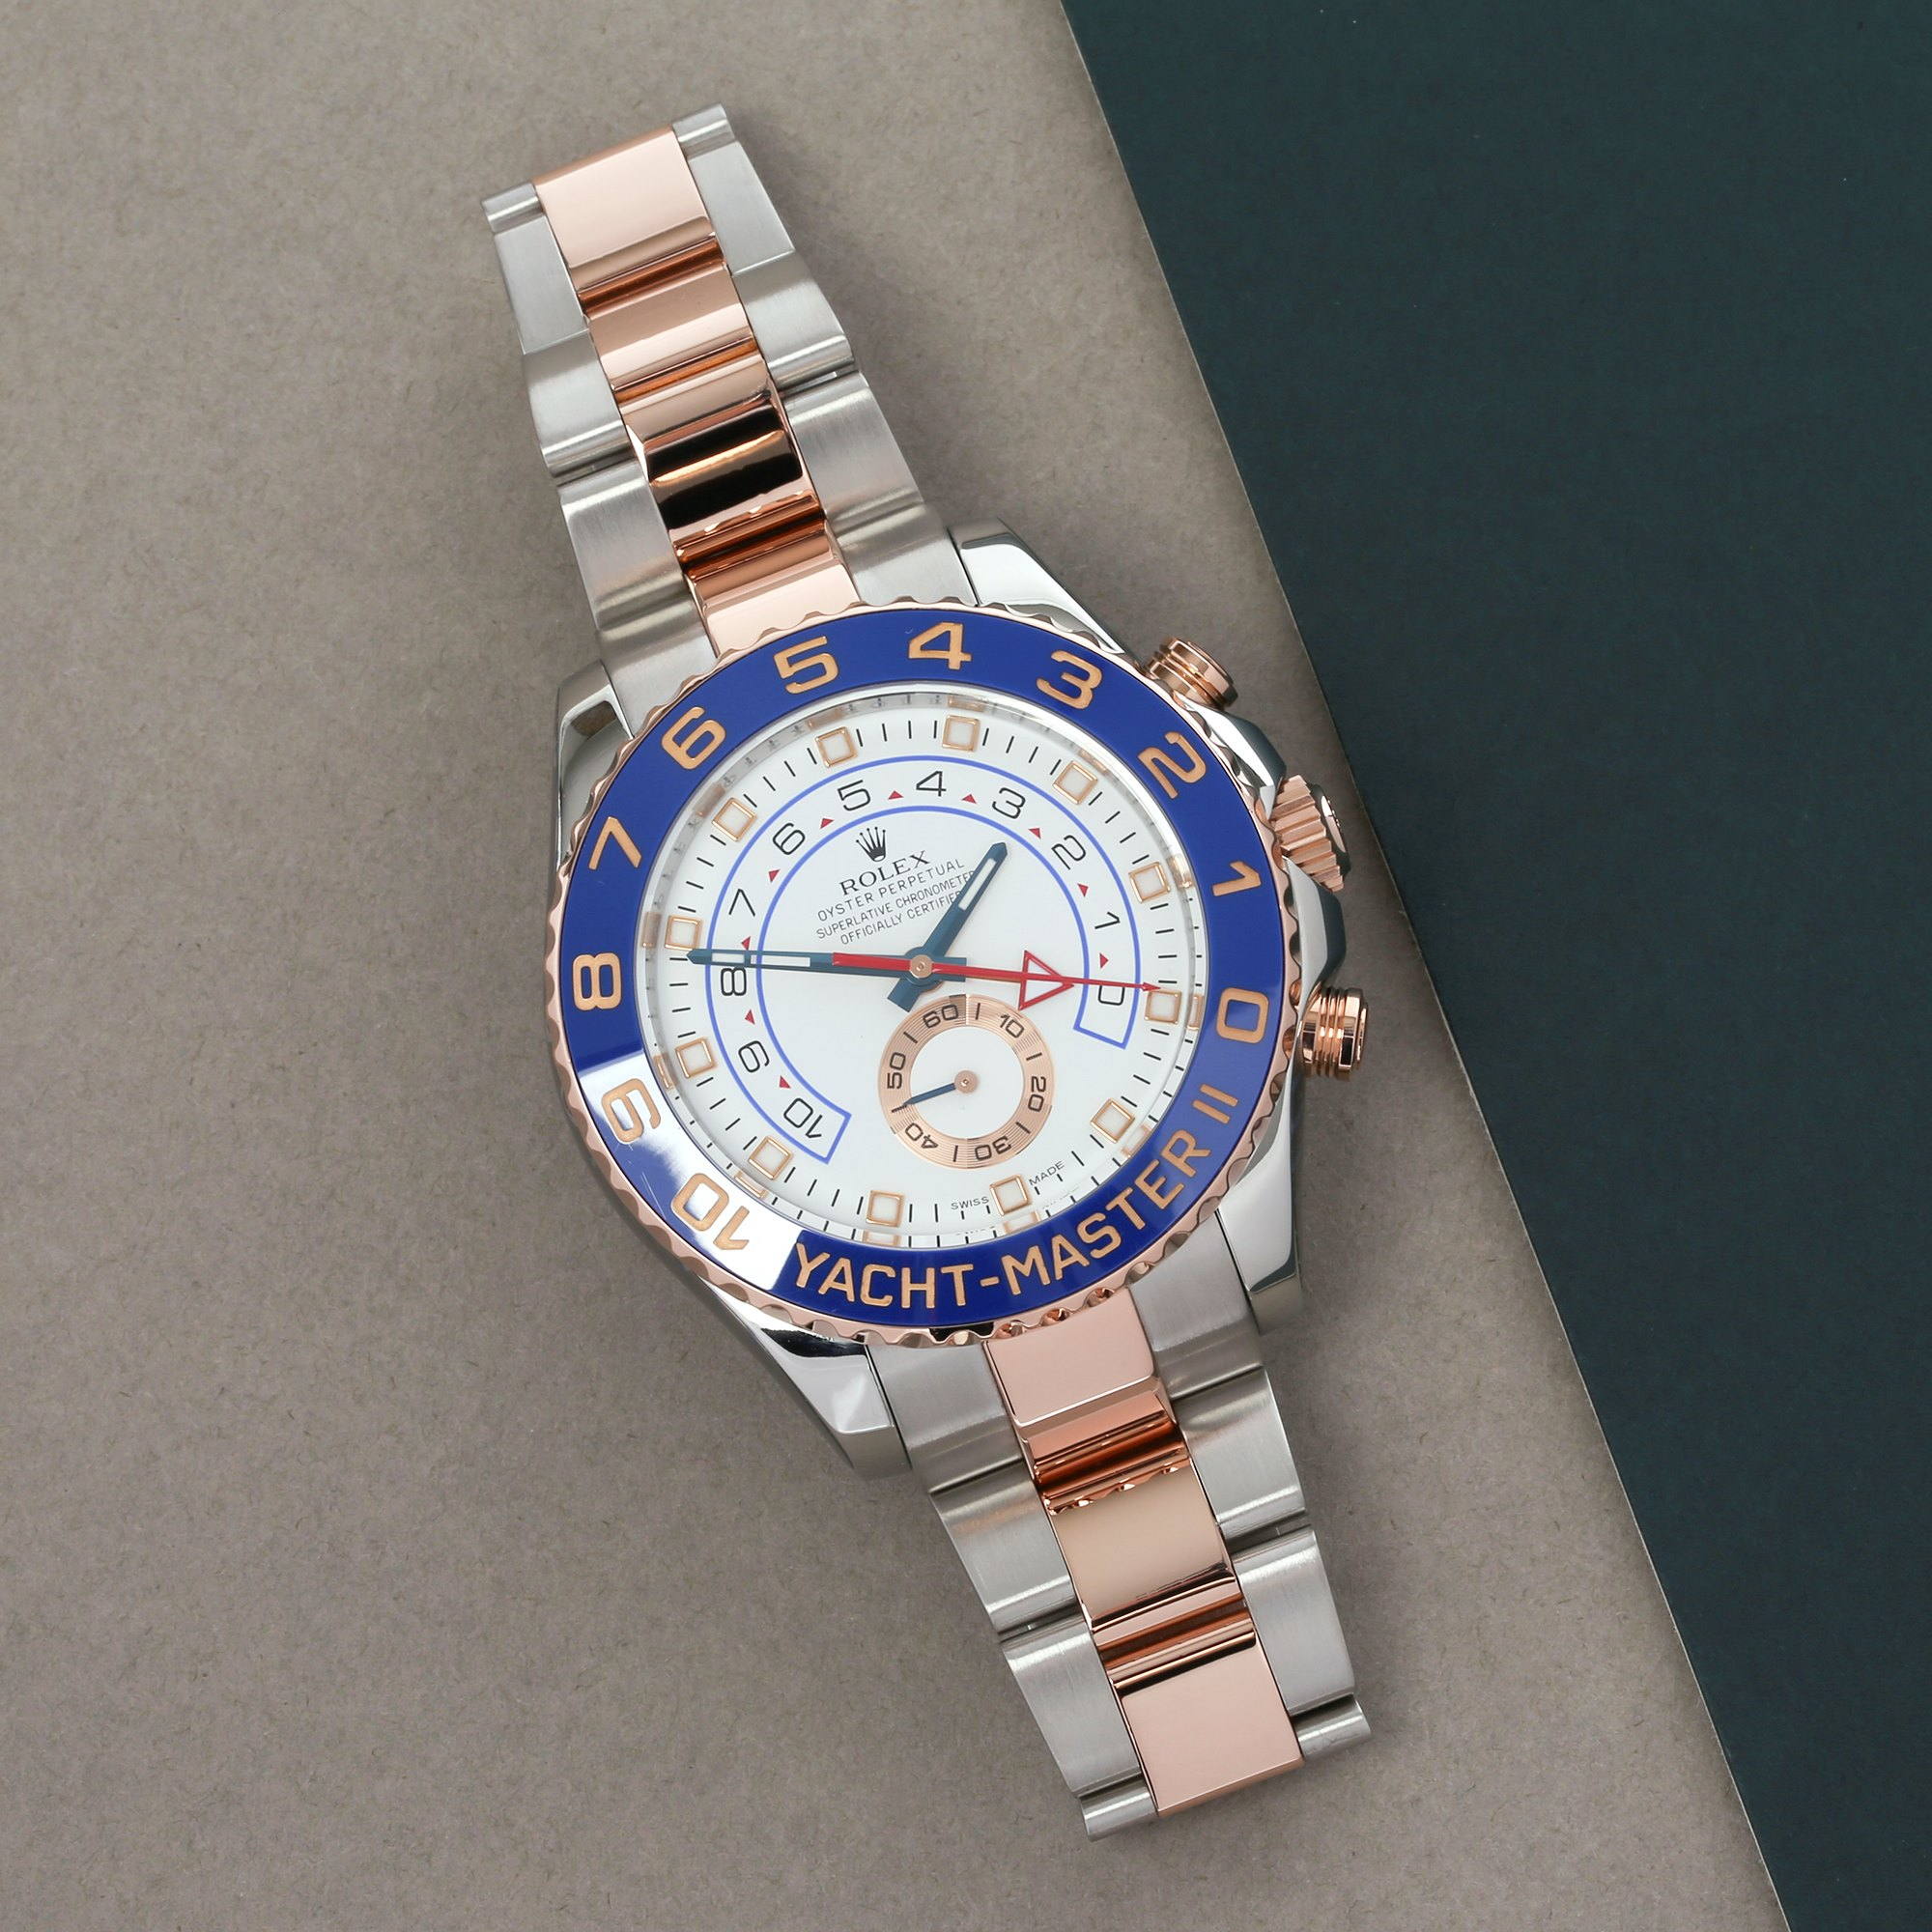 Rolex Yacht-Master II 116681 Men's Rose Gold & Stainless Steel Watch - Image 10 of 10